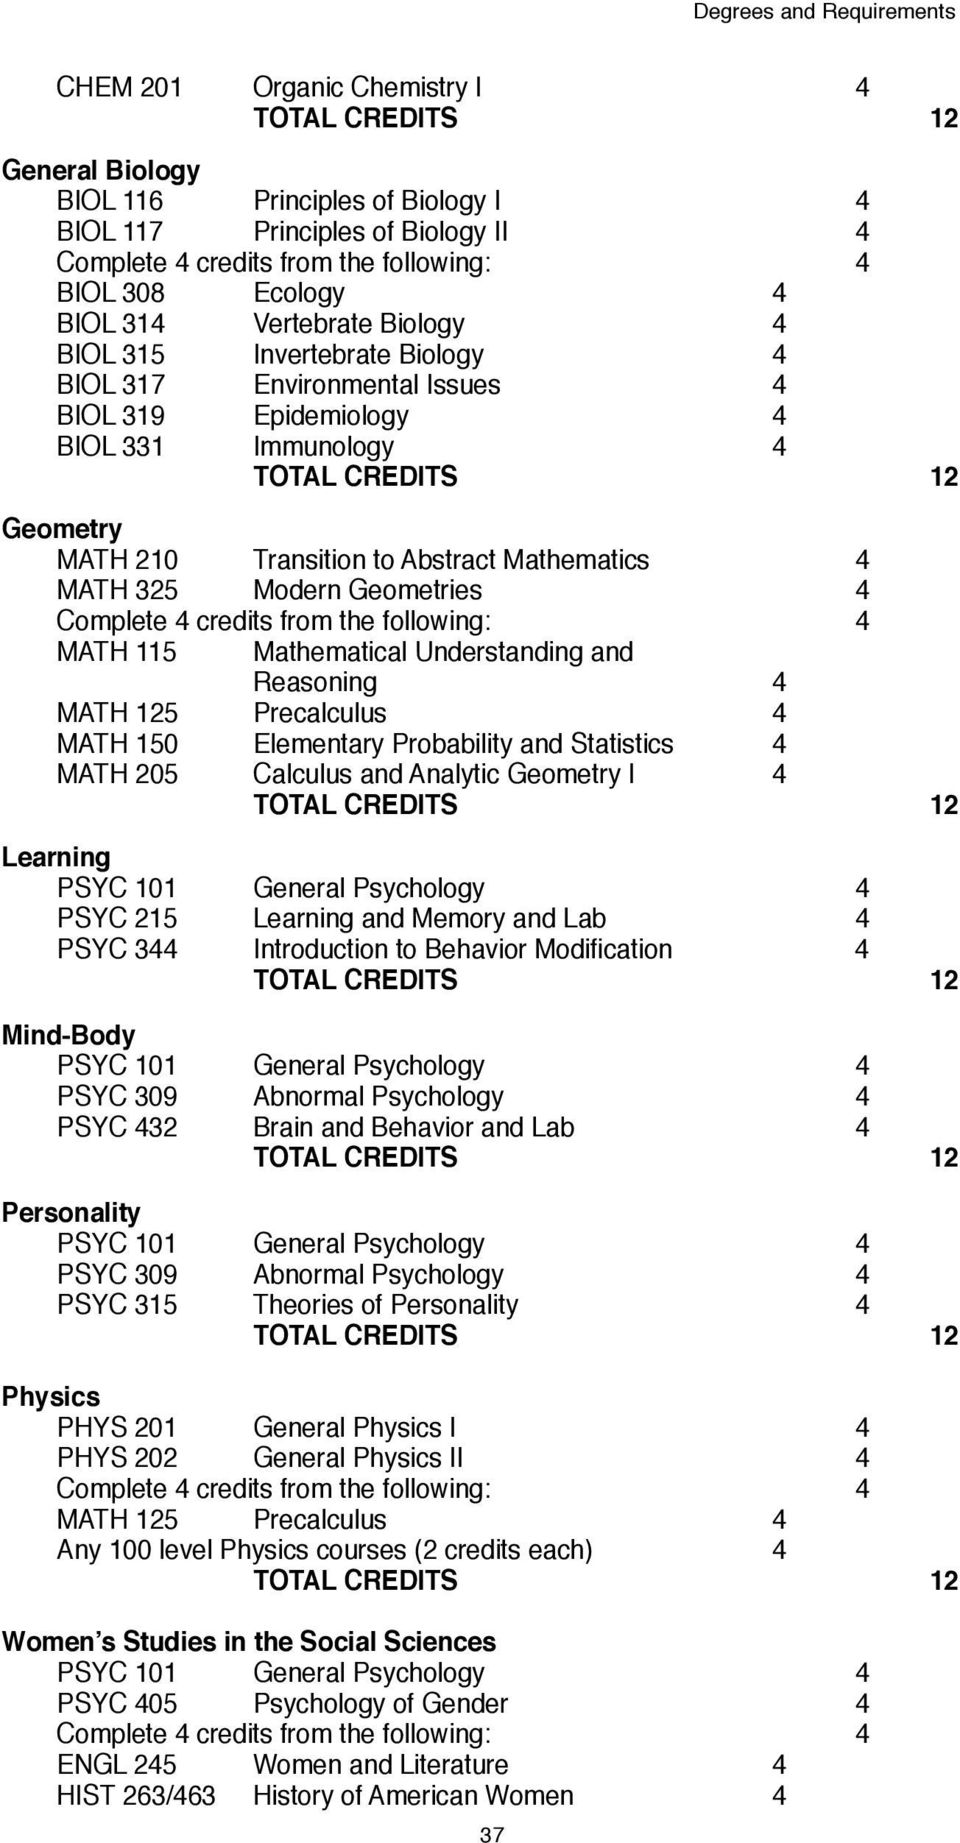 and Reasoning 4 MATH 125 Precalculus 4 MATH 150 Elementary Probability and Statistics 4 MATH 205 Calculus and Analytic Geometry I 4 Learning PSYC 101 General Psychology 4 PSYC 215 Learning and Memory